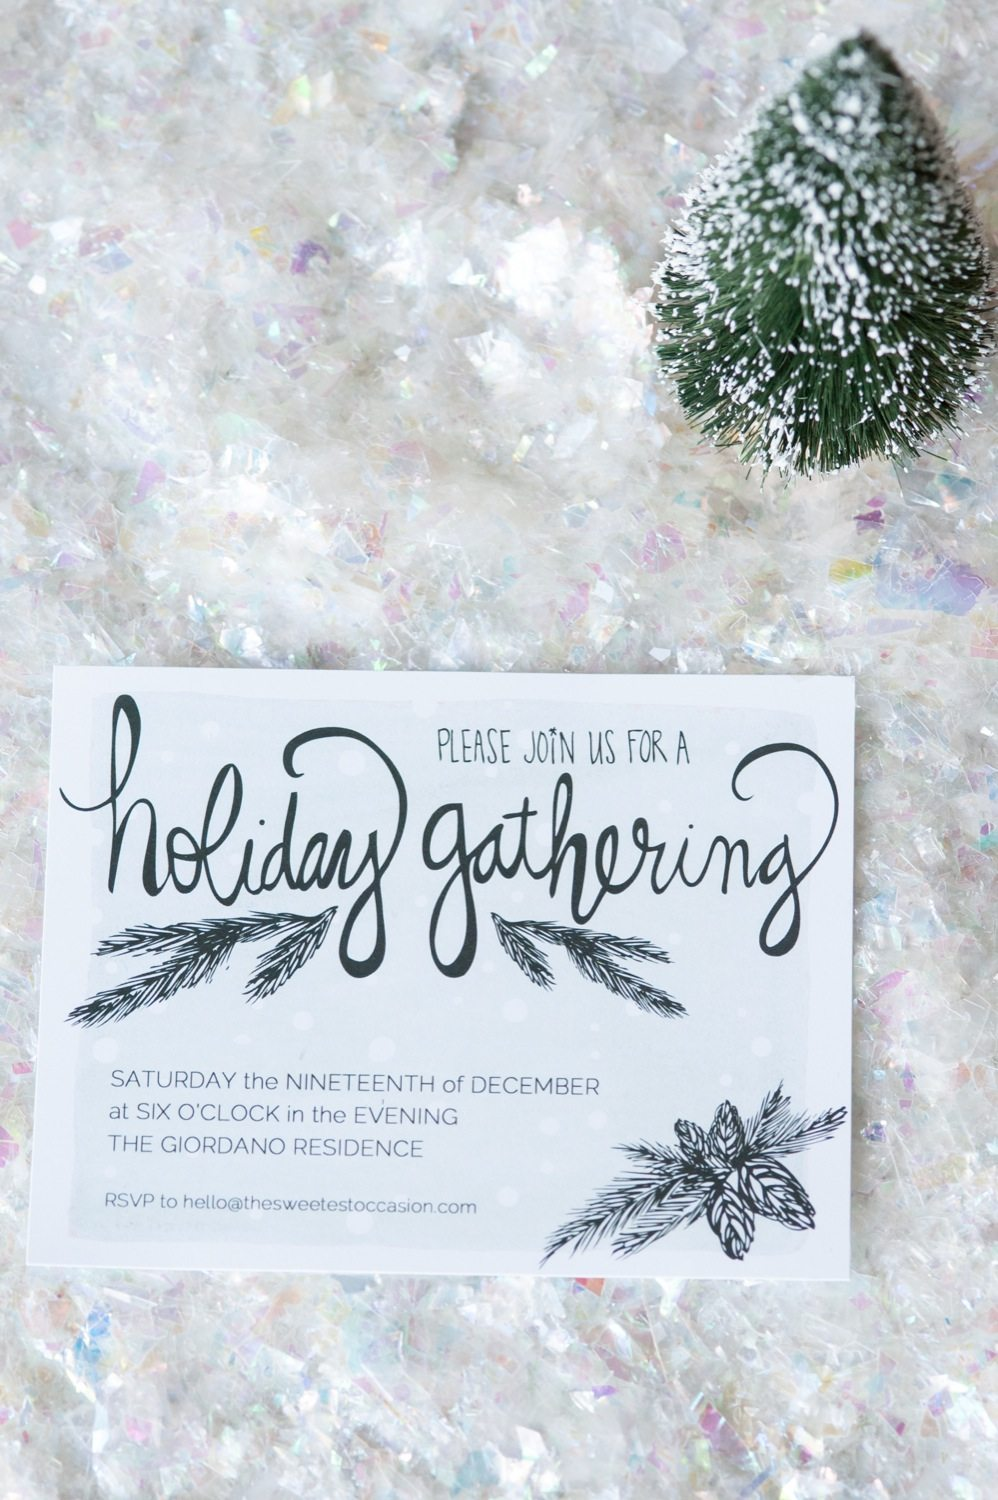 printable holiday party invitations the sweetest occasion the printable holiday party invitations from cydconverse